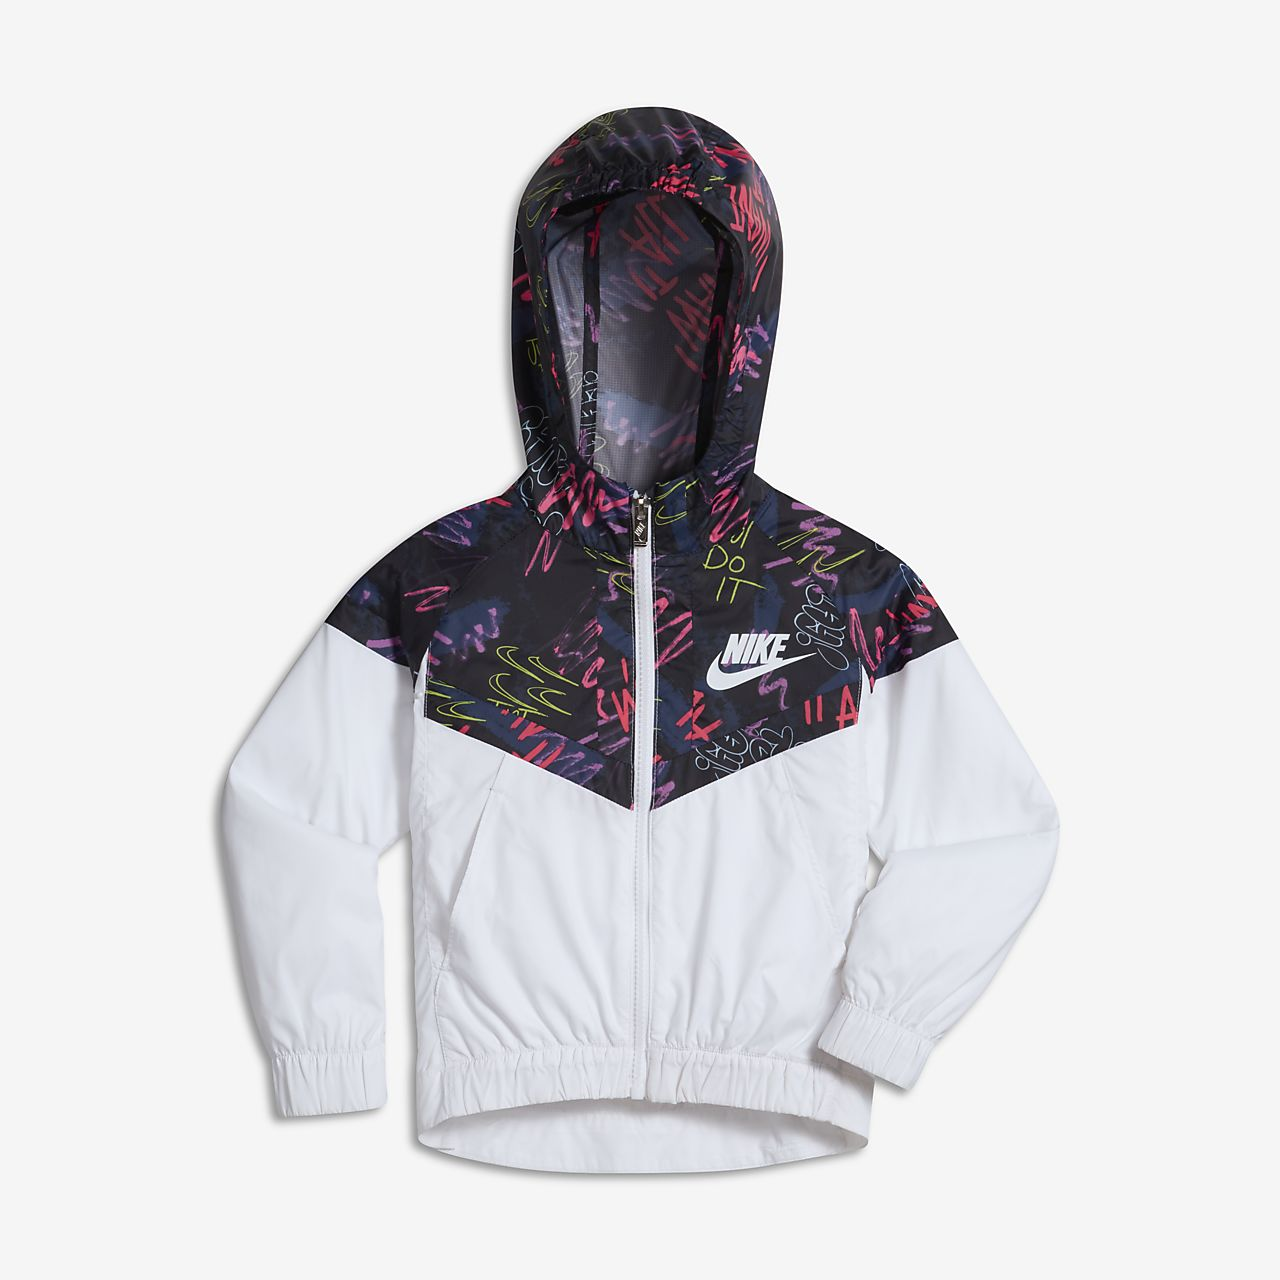 Nike Sportswear Windrunner Little Kids (Girls ) Jacket ... 6c15de9a524